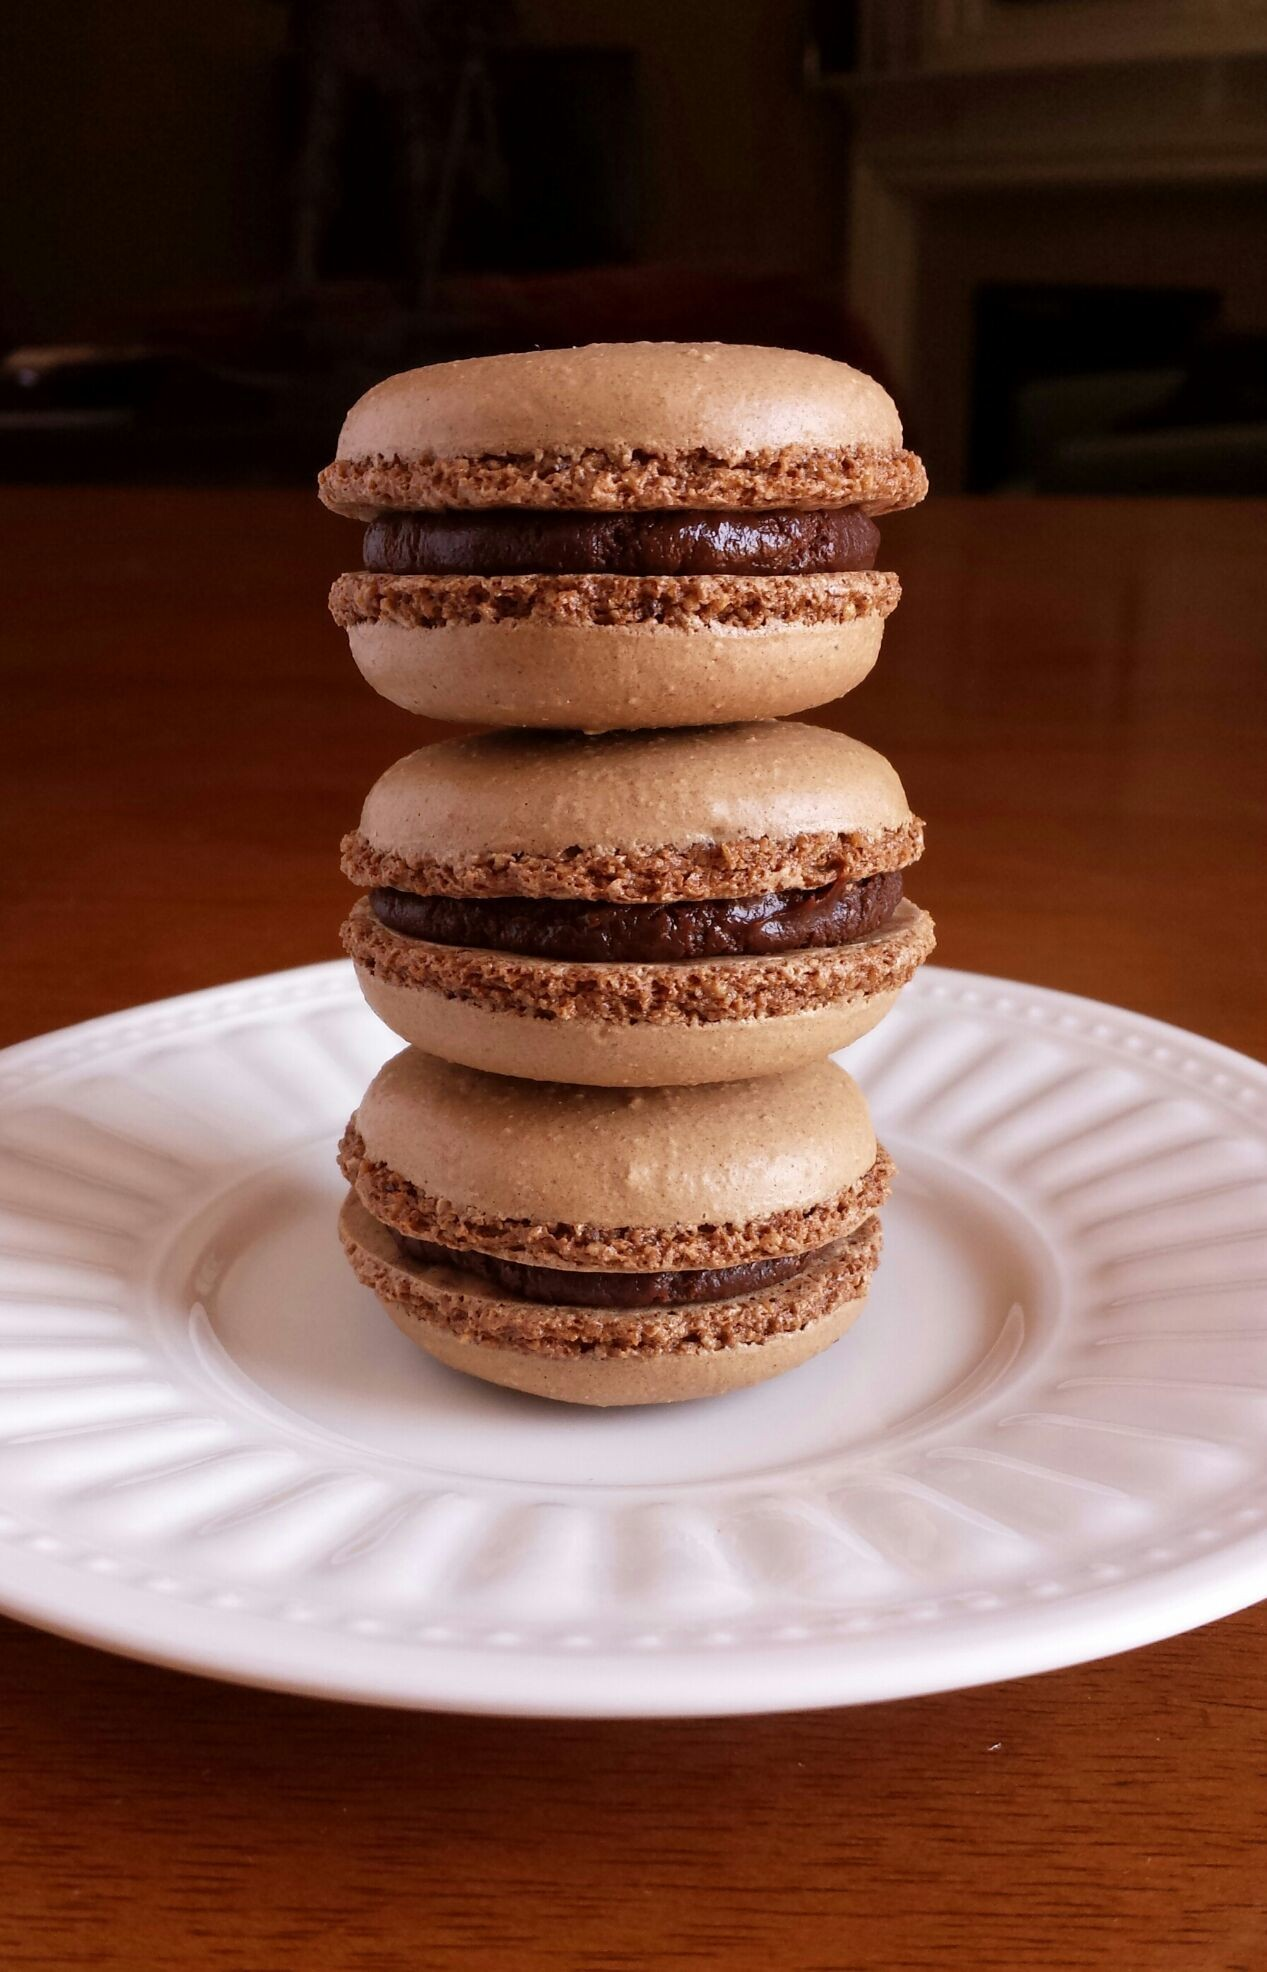 Today's test at Zingerman's BAKE! Chocolate Macarons filled with Salted Caramel Ganache.